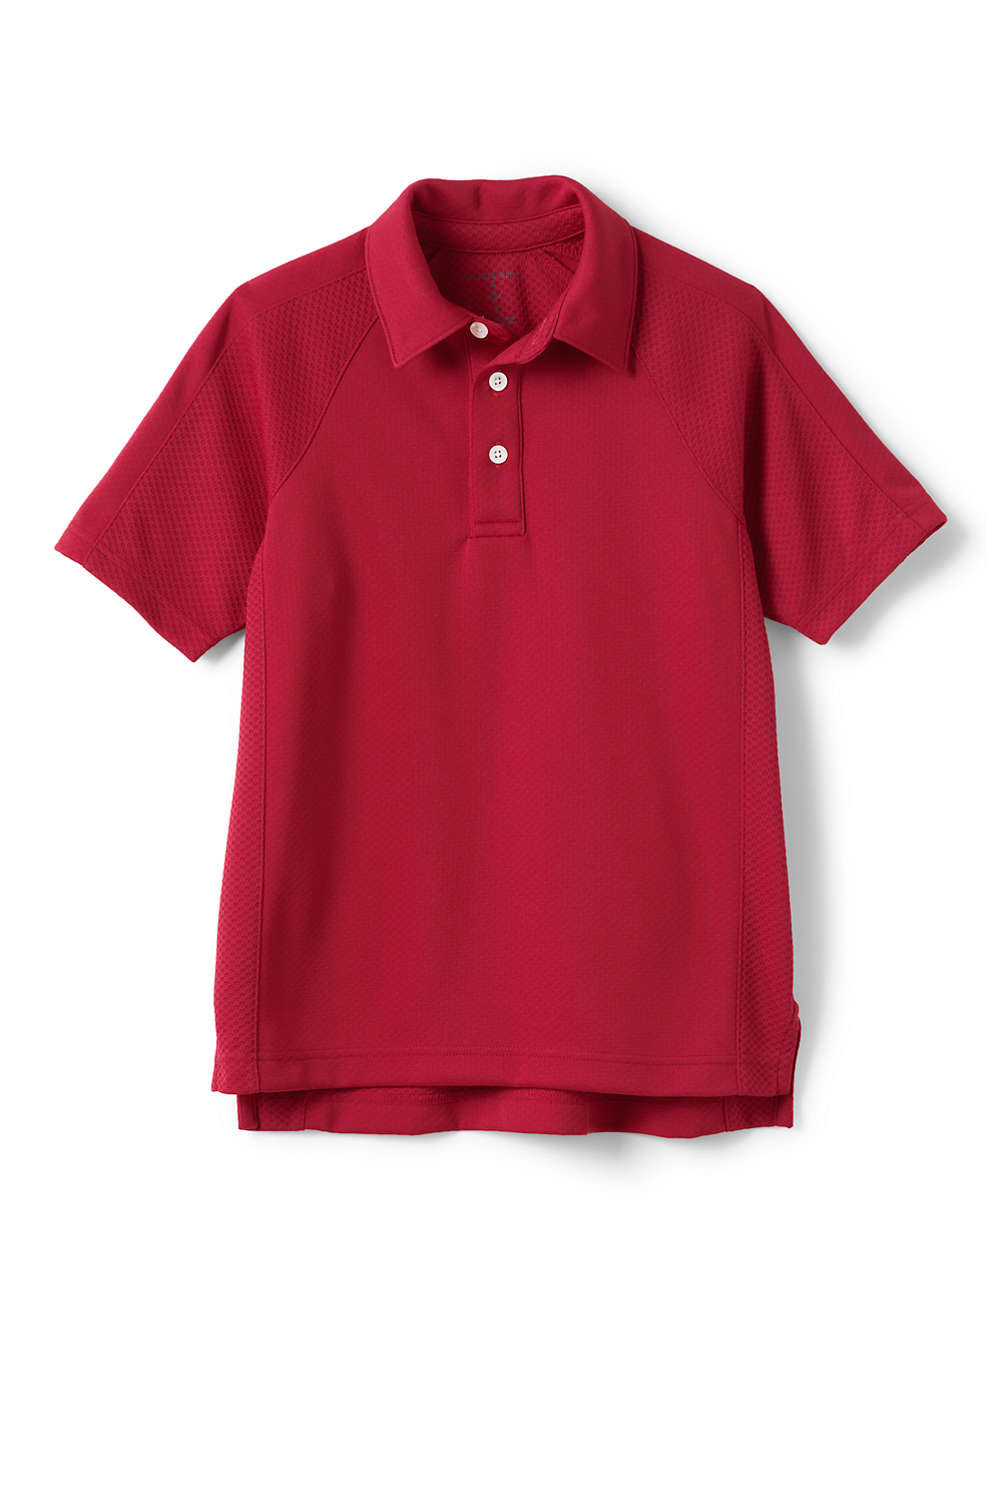 School Uniform Short Sleeve Textured Active Polo From Lands End